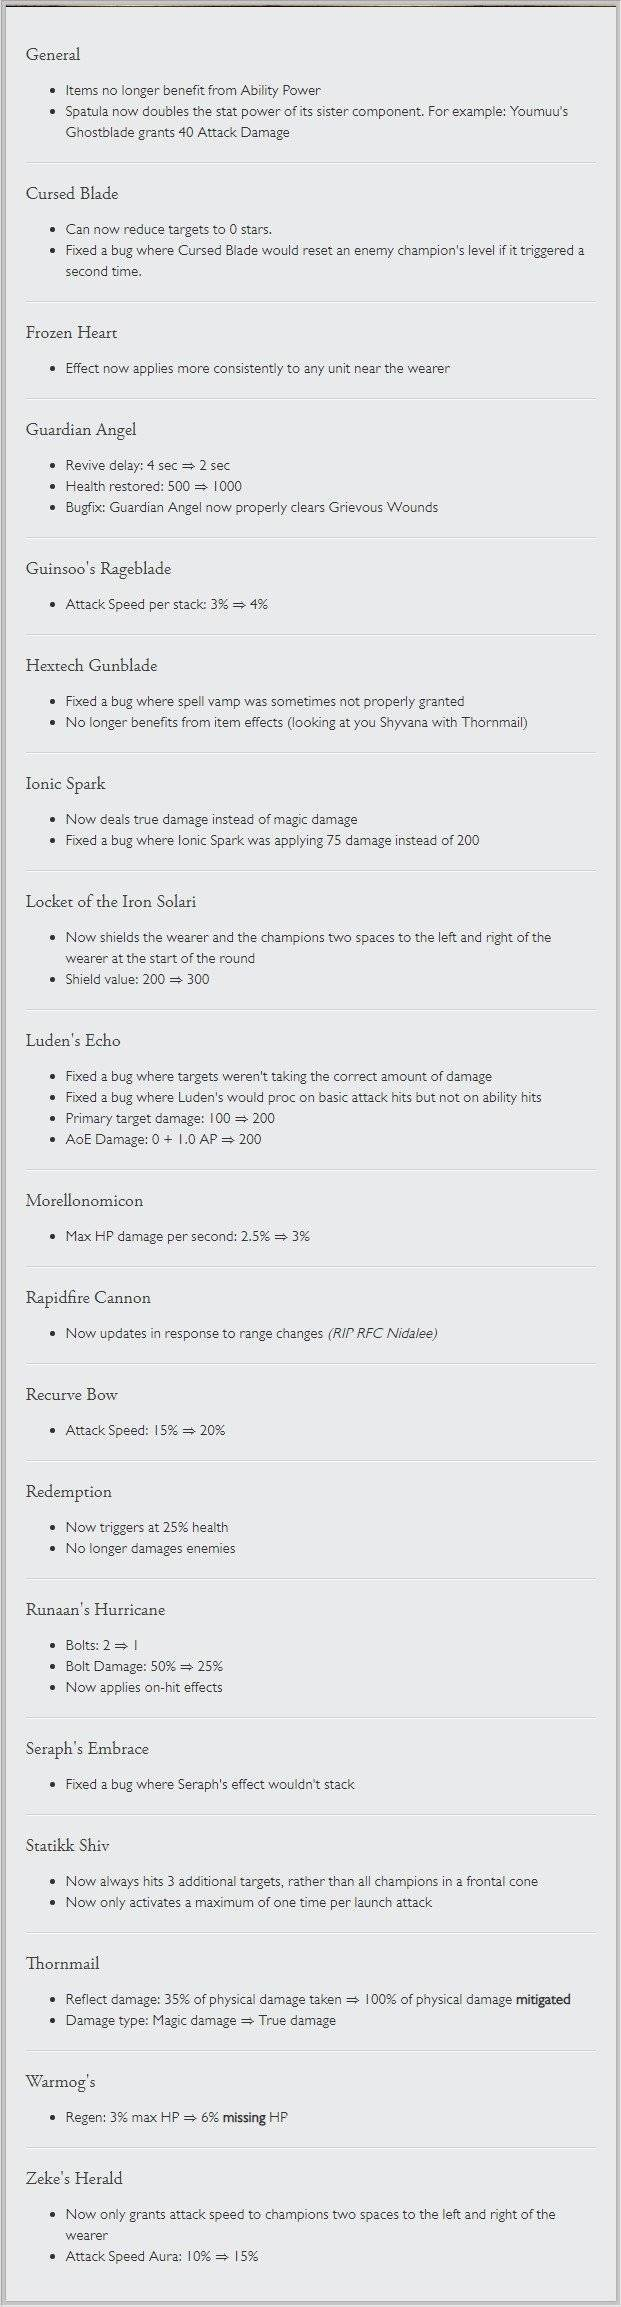 Teamfight Tactics: General - Teamfight Tactics Patch 9.14 notes image 20